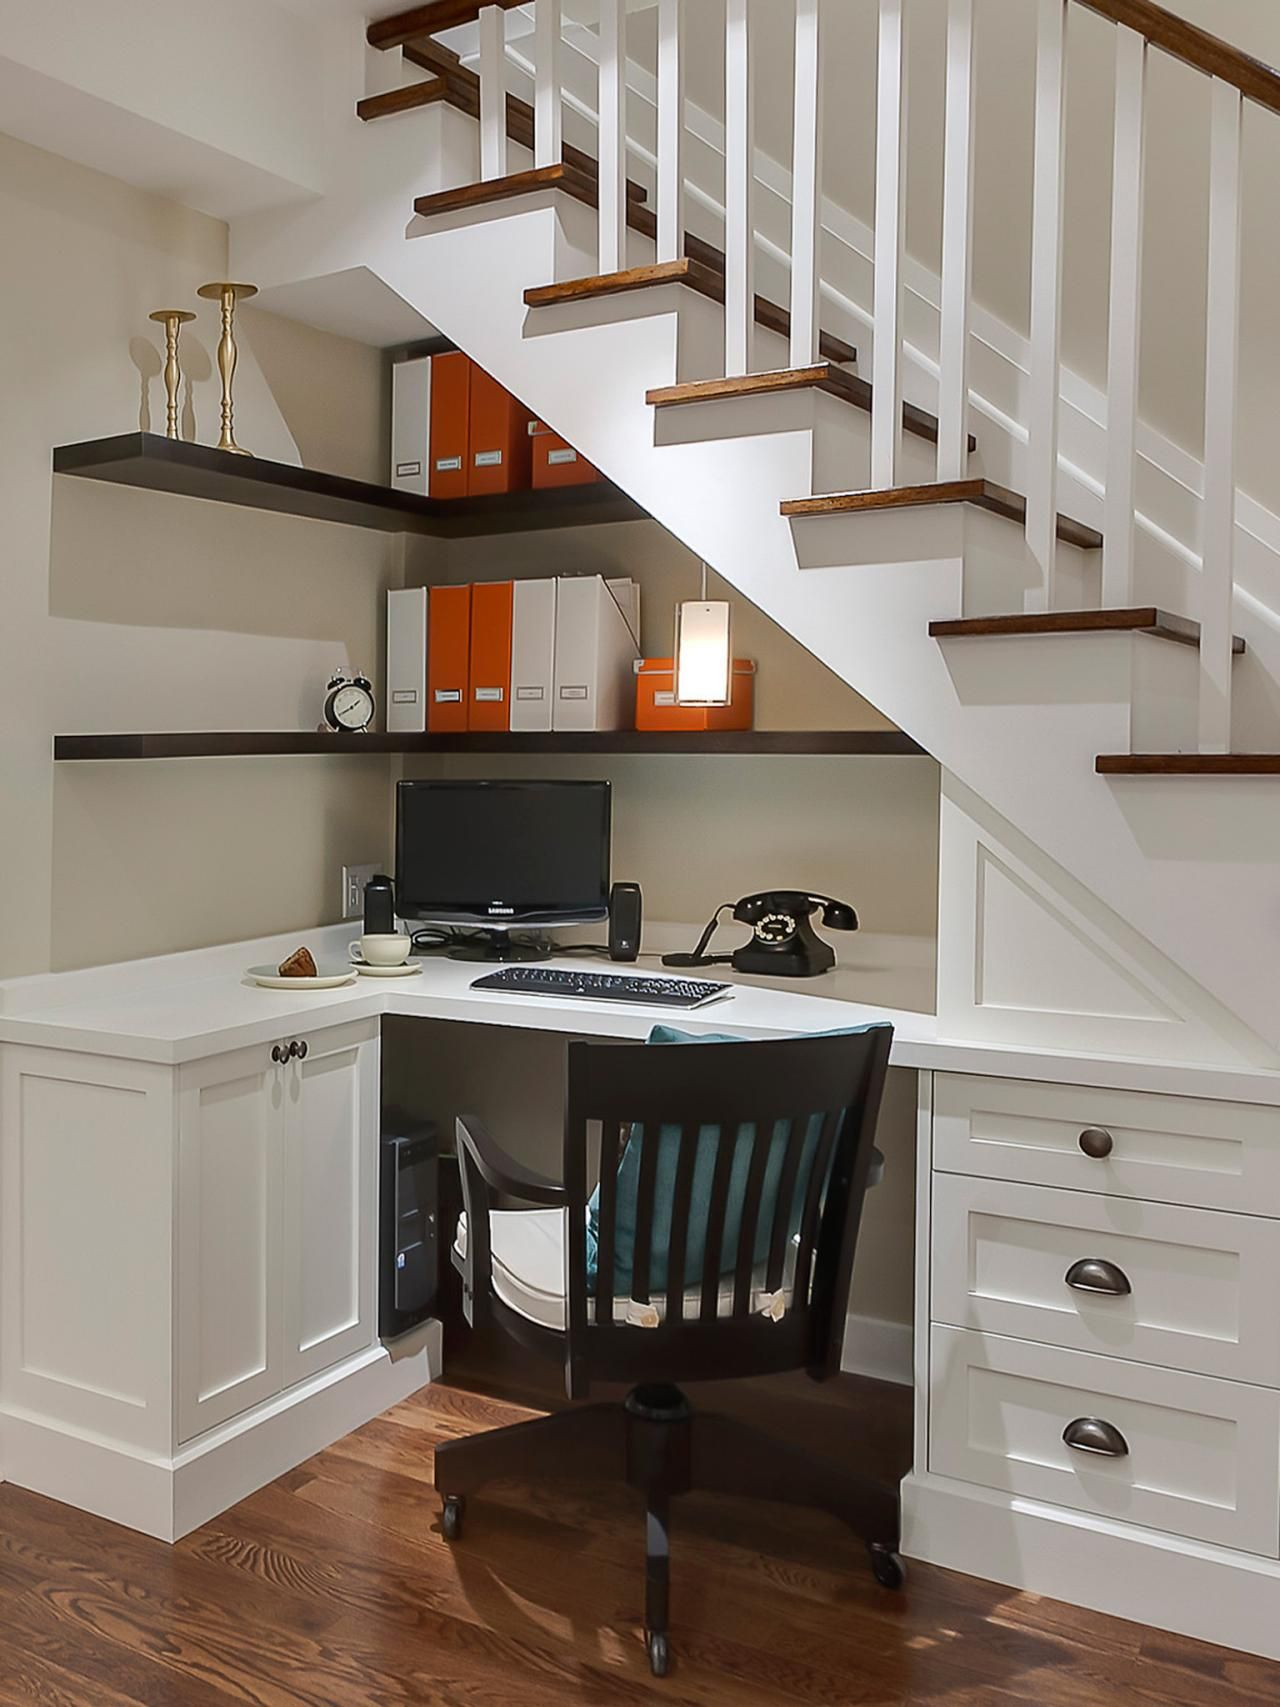 Basement Offices Ideas 11 Pictures Of Organized Home Offices Remodeling Ideas